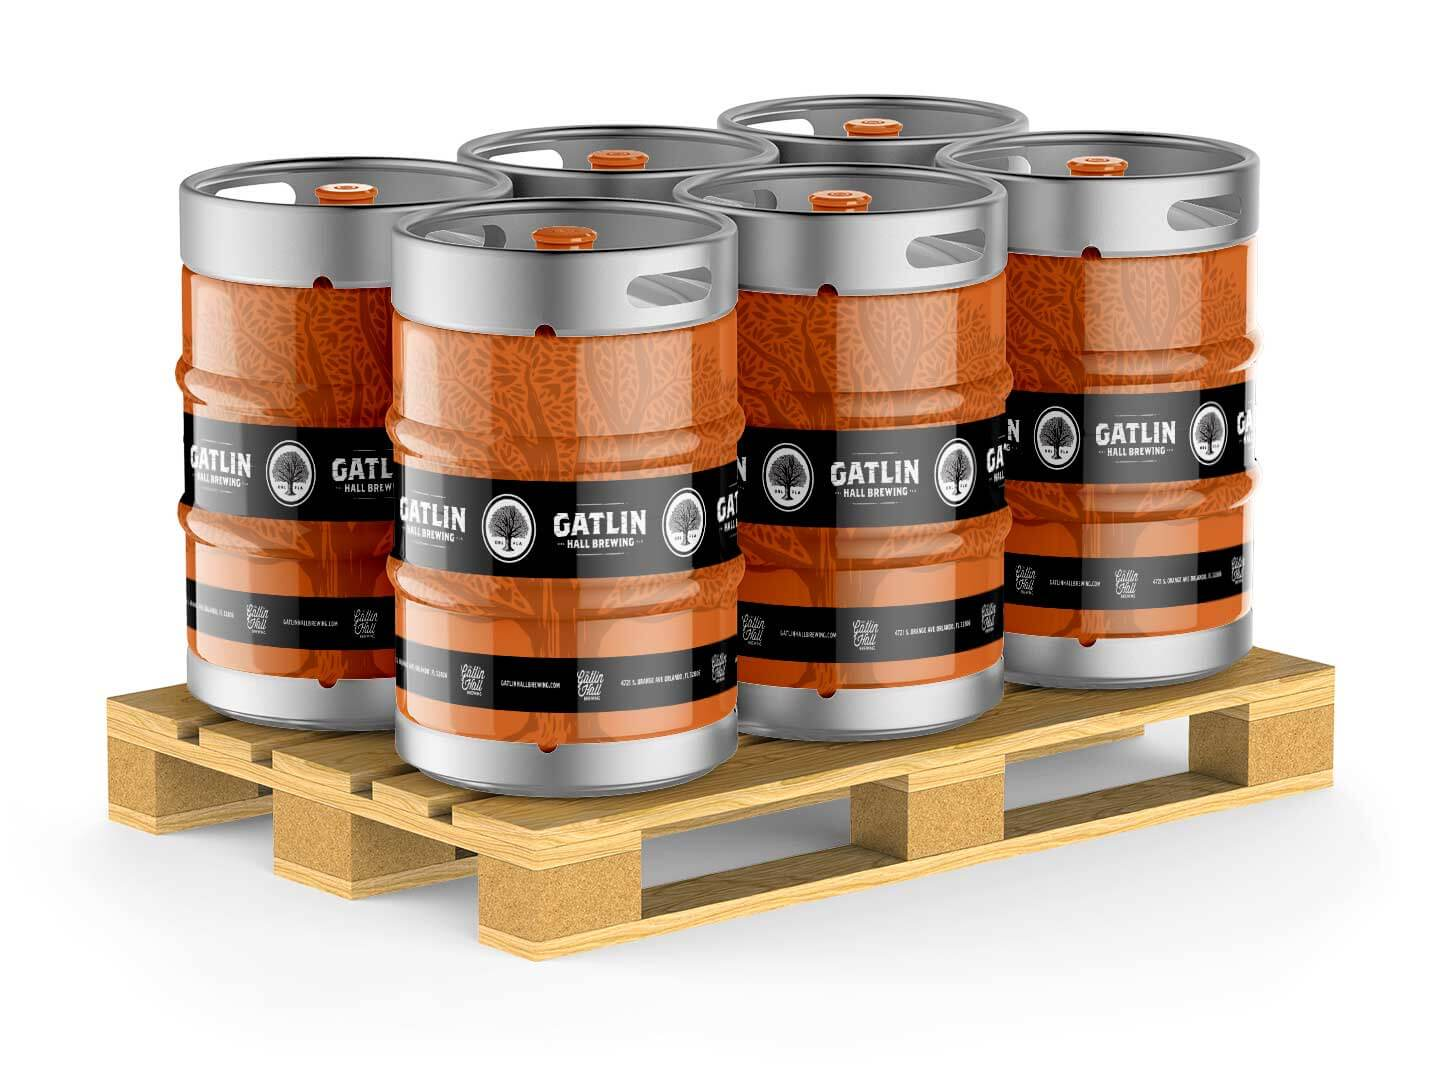 Kegs for Gatlin Hall Brewery